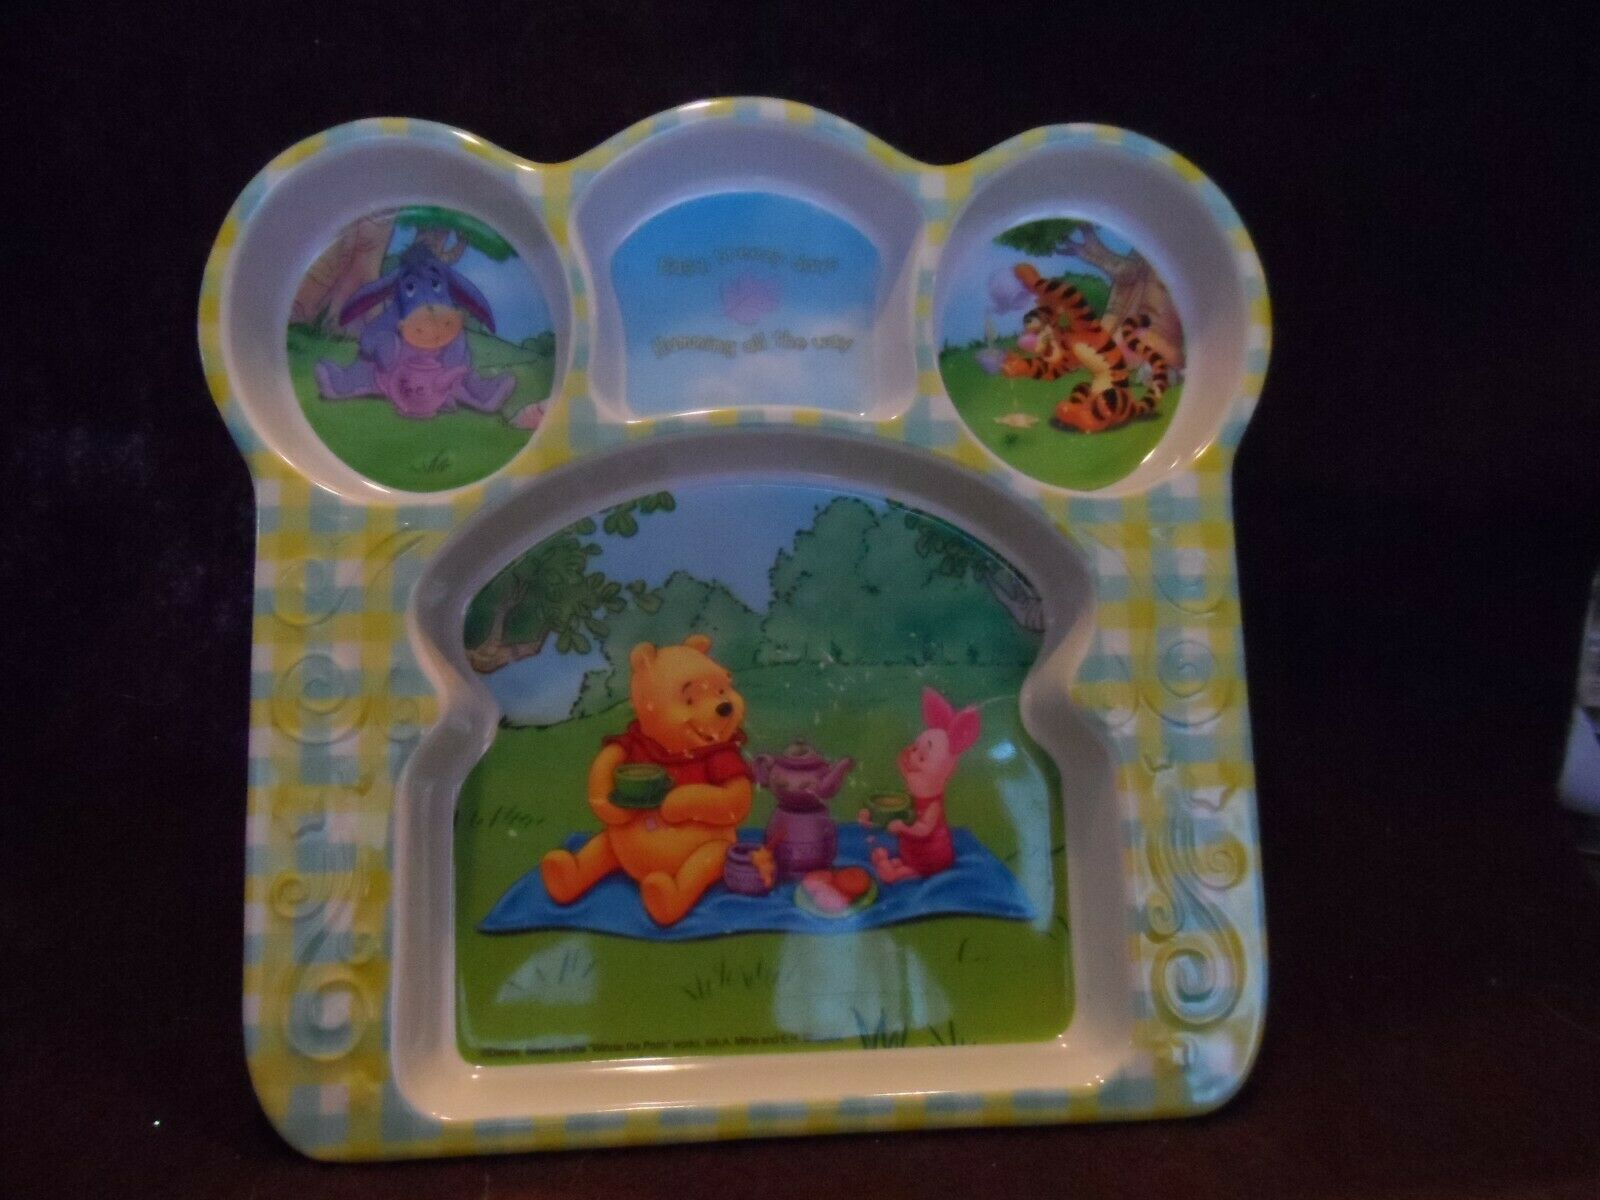 Disney Winnie the Pooh Character Plastic Divided Kids Plate